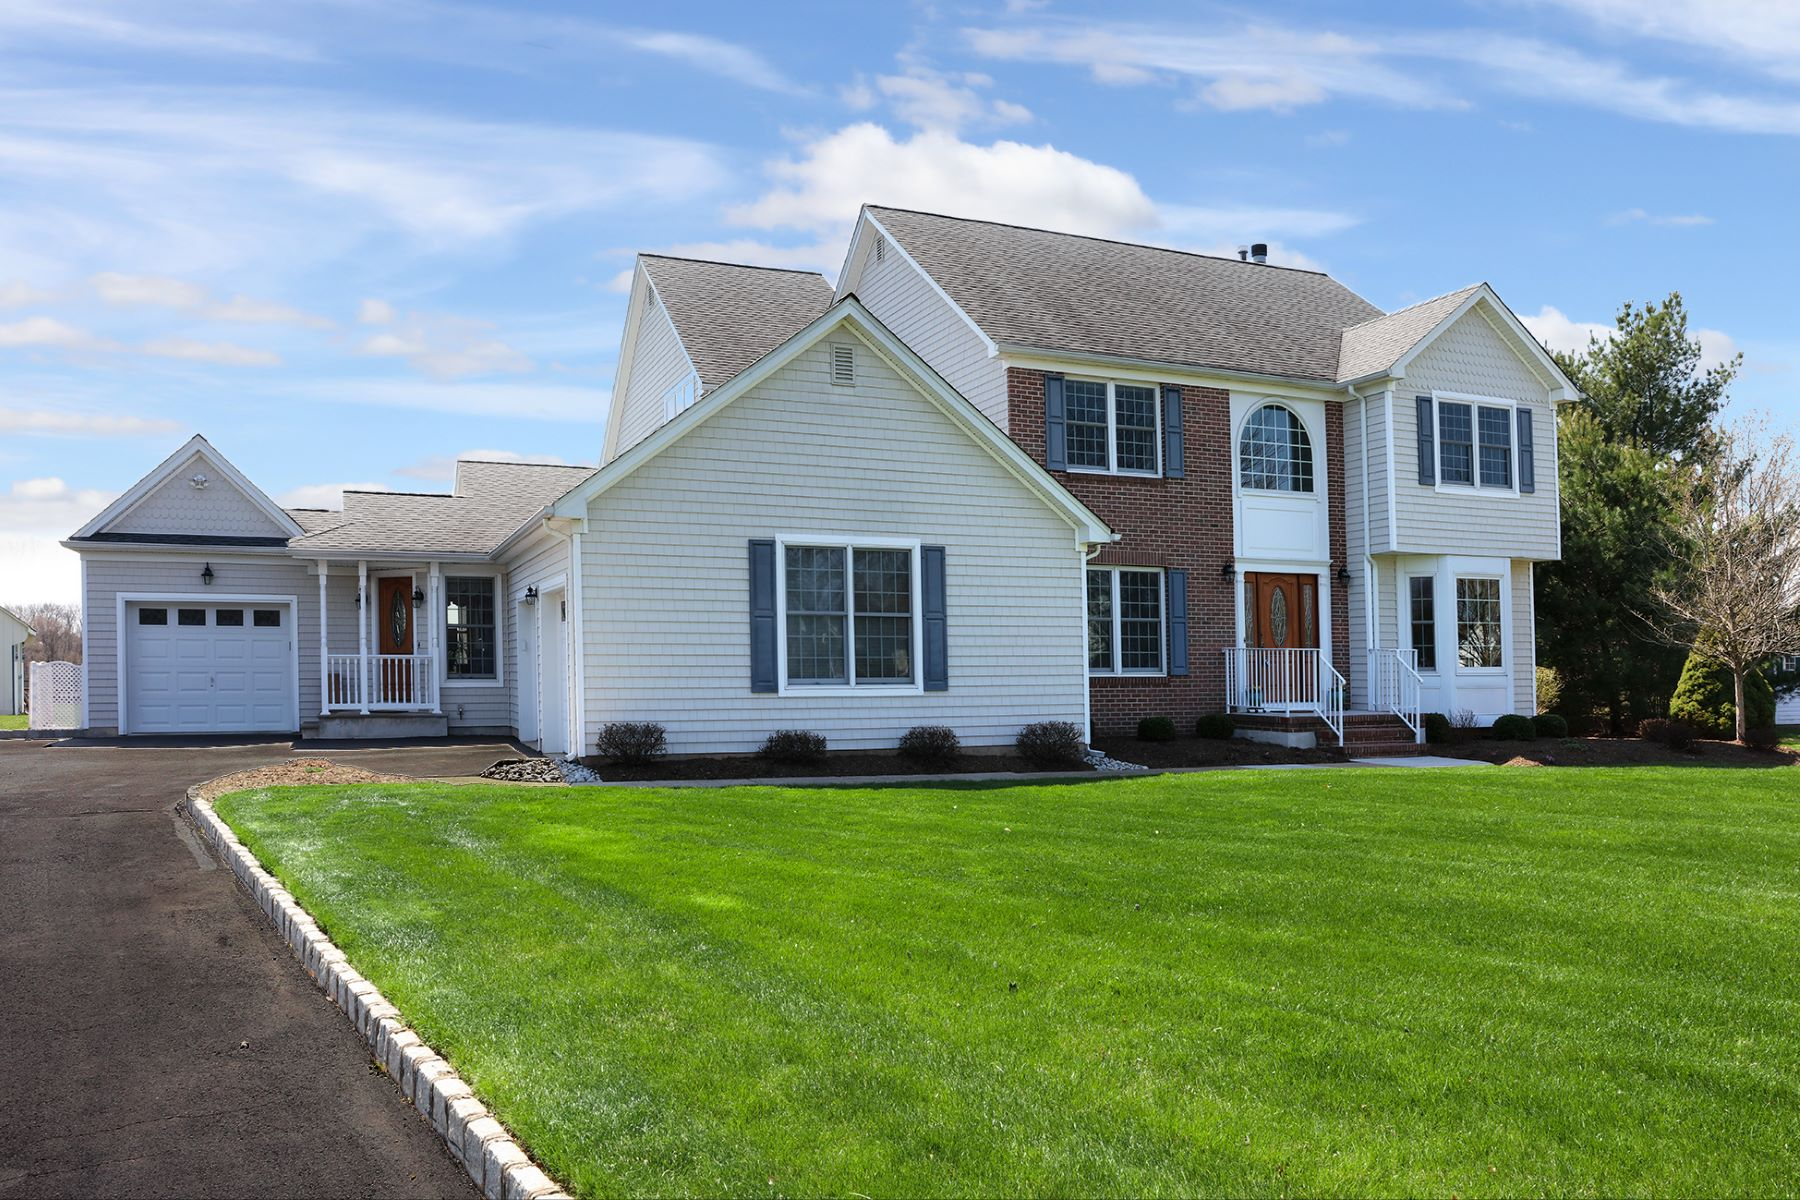 Single Family Home for Sale at A Serene Outlook From Every Room - Readington Township 25 John Reading Road Flemington, 08822 United States